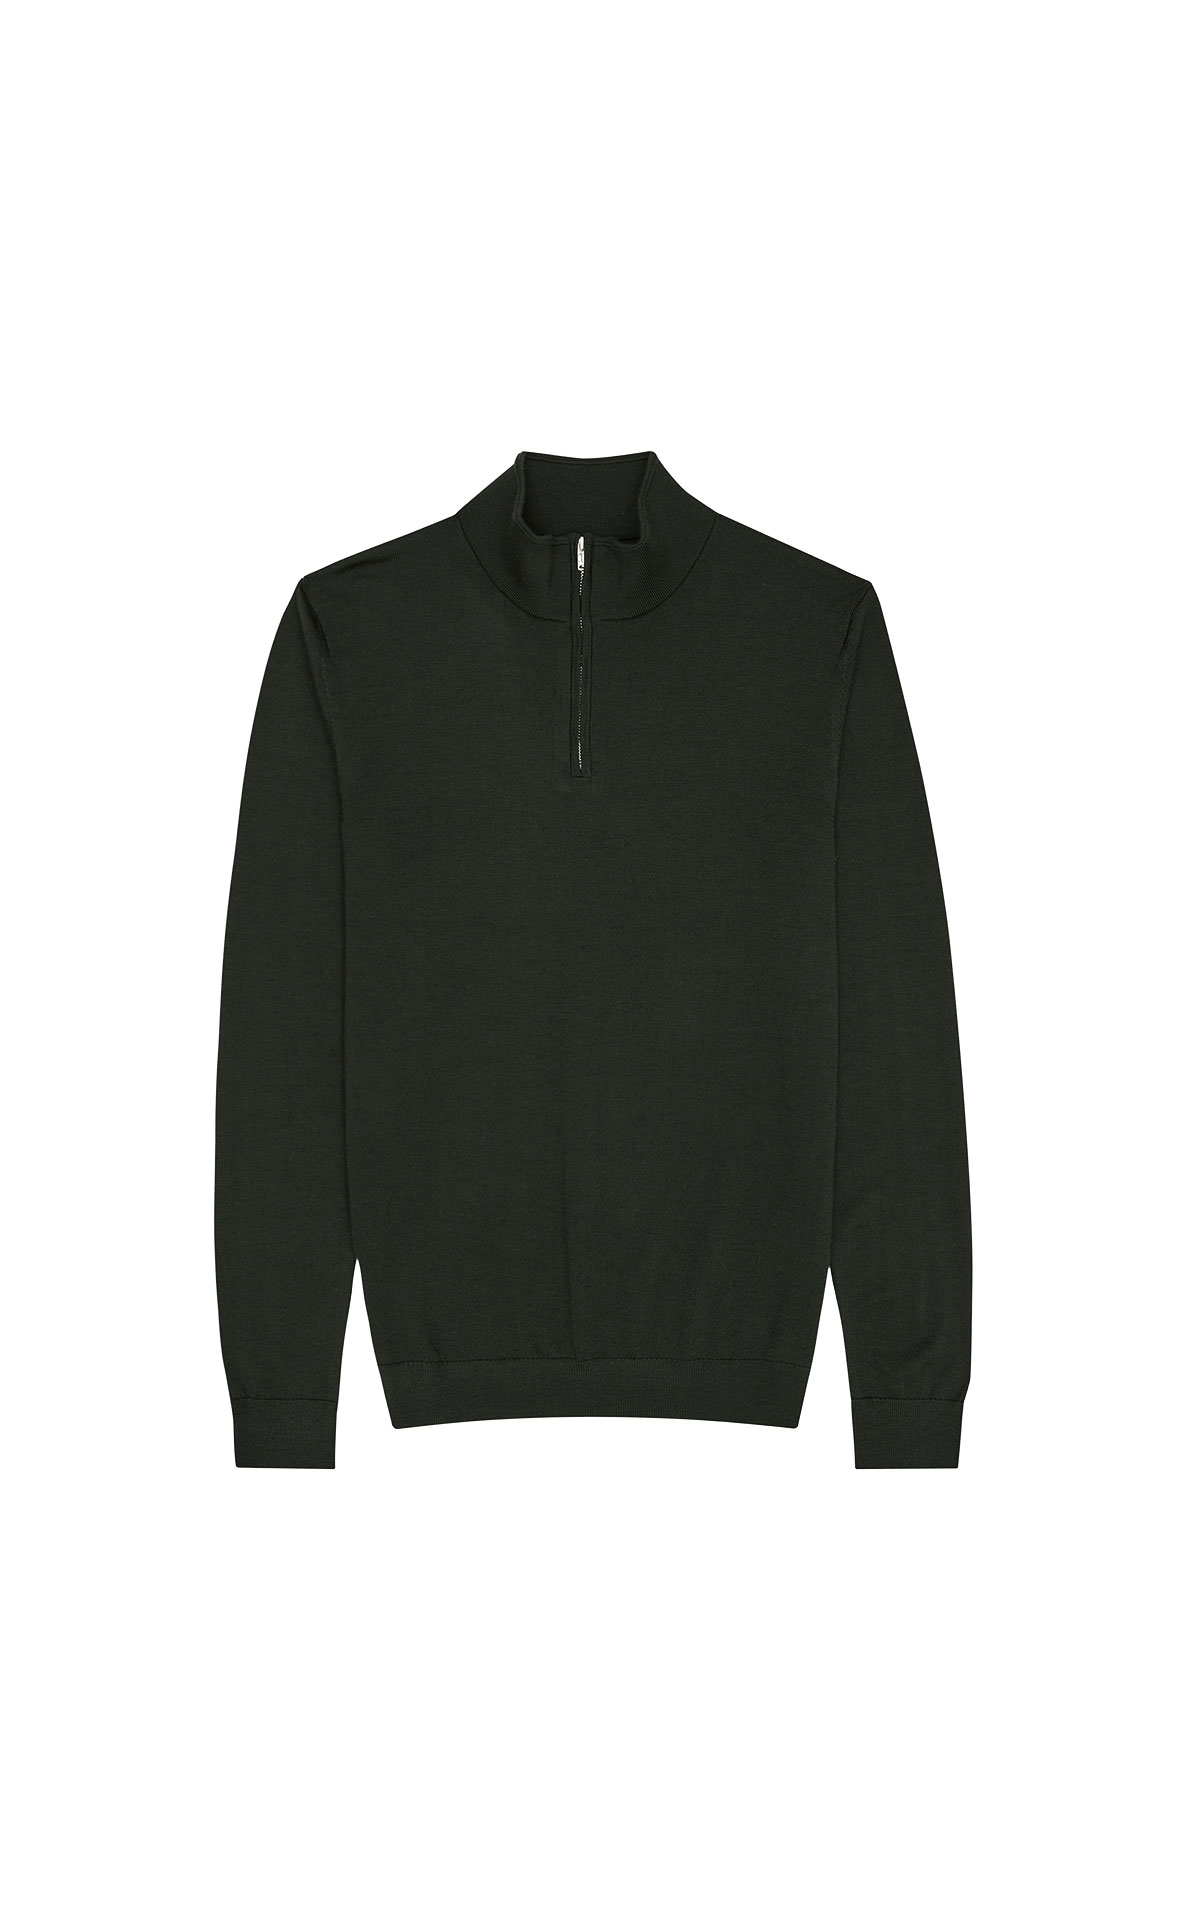 Reiss Blackhall merino jumper from Bicester Village